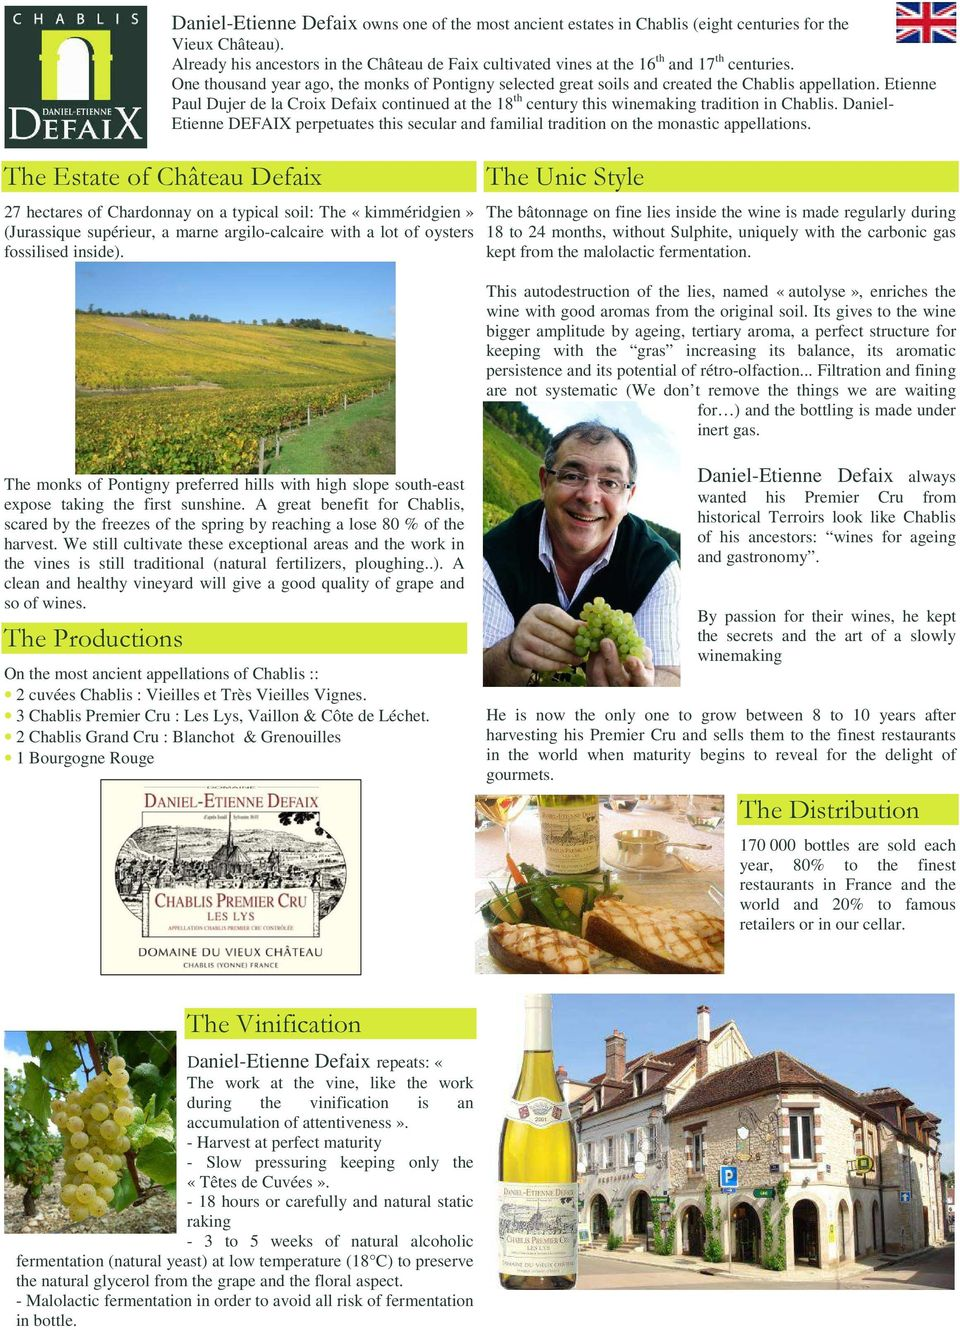 Etienne Paul Dujer de la Croix Defaix continued at the 18 th century this winemaking tradition in Chablis.